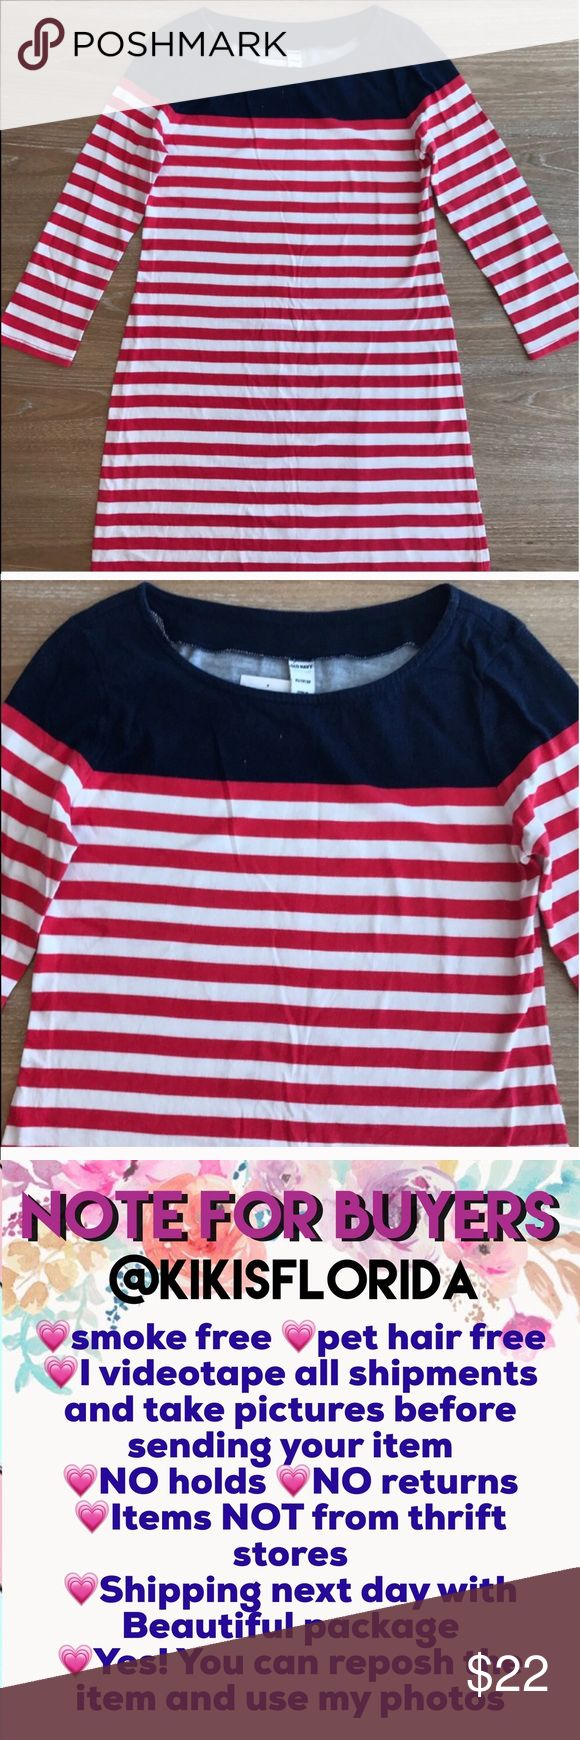 OLD NAVY NAUTICAL SUMMER DRESS Beautiful stripes dress 3/4 sleeves.  Spandex fabric. Super comfy, works great with leggings. Item#1                                                                         💗Condition: NWT, No flaws 💗Smoke free home 💗No trades, No returns 💗No modeling  💗Shipping next day 💗OPEN TO reasonable OFFERS  💗BUNDLE and save more 💗All transactions video recorded to ensure quality. #119 Old Navy Dresses Mini